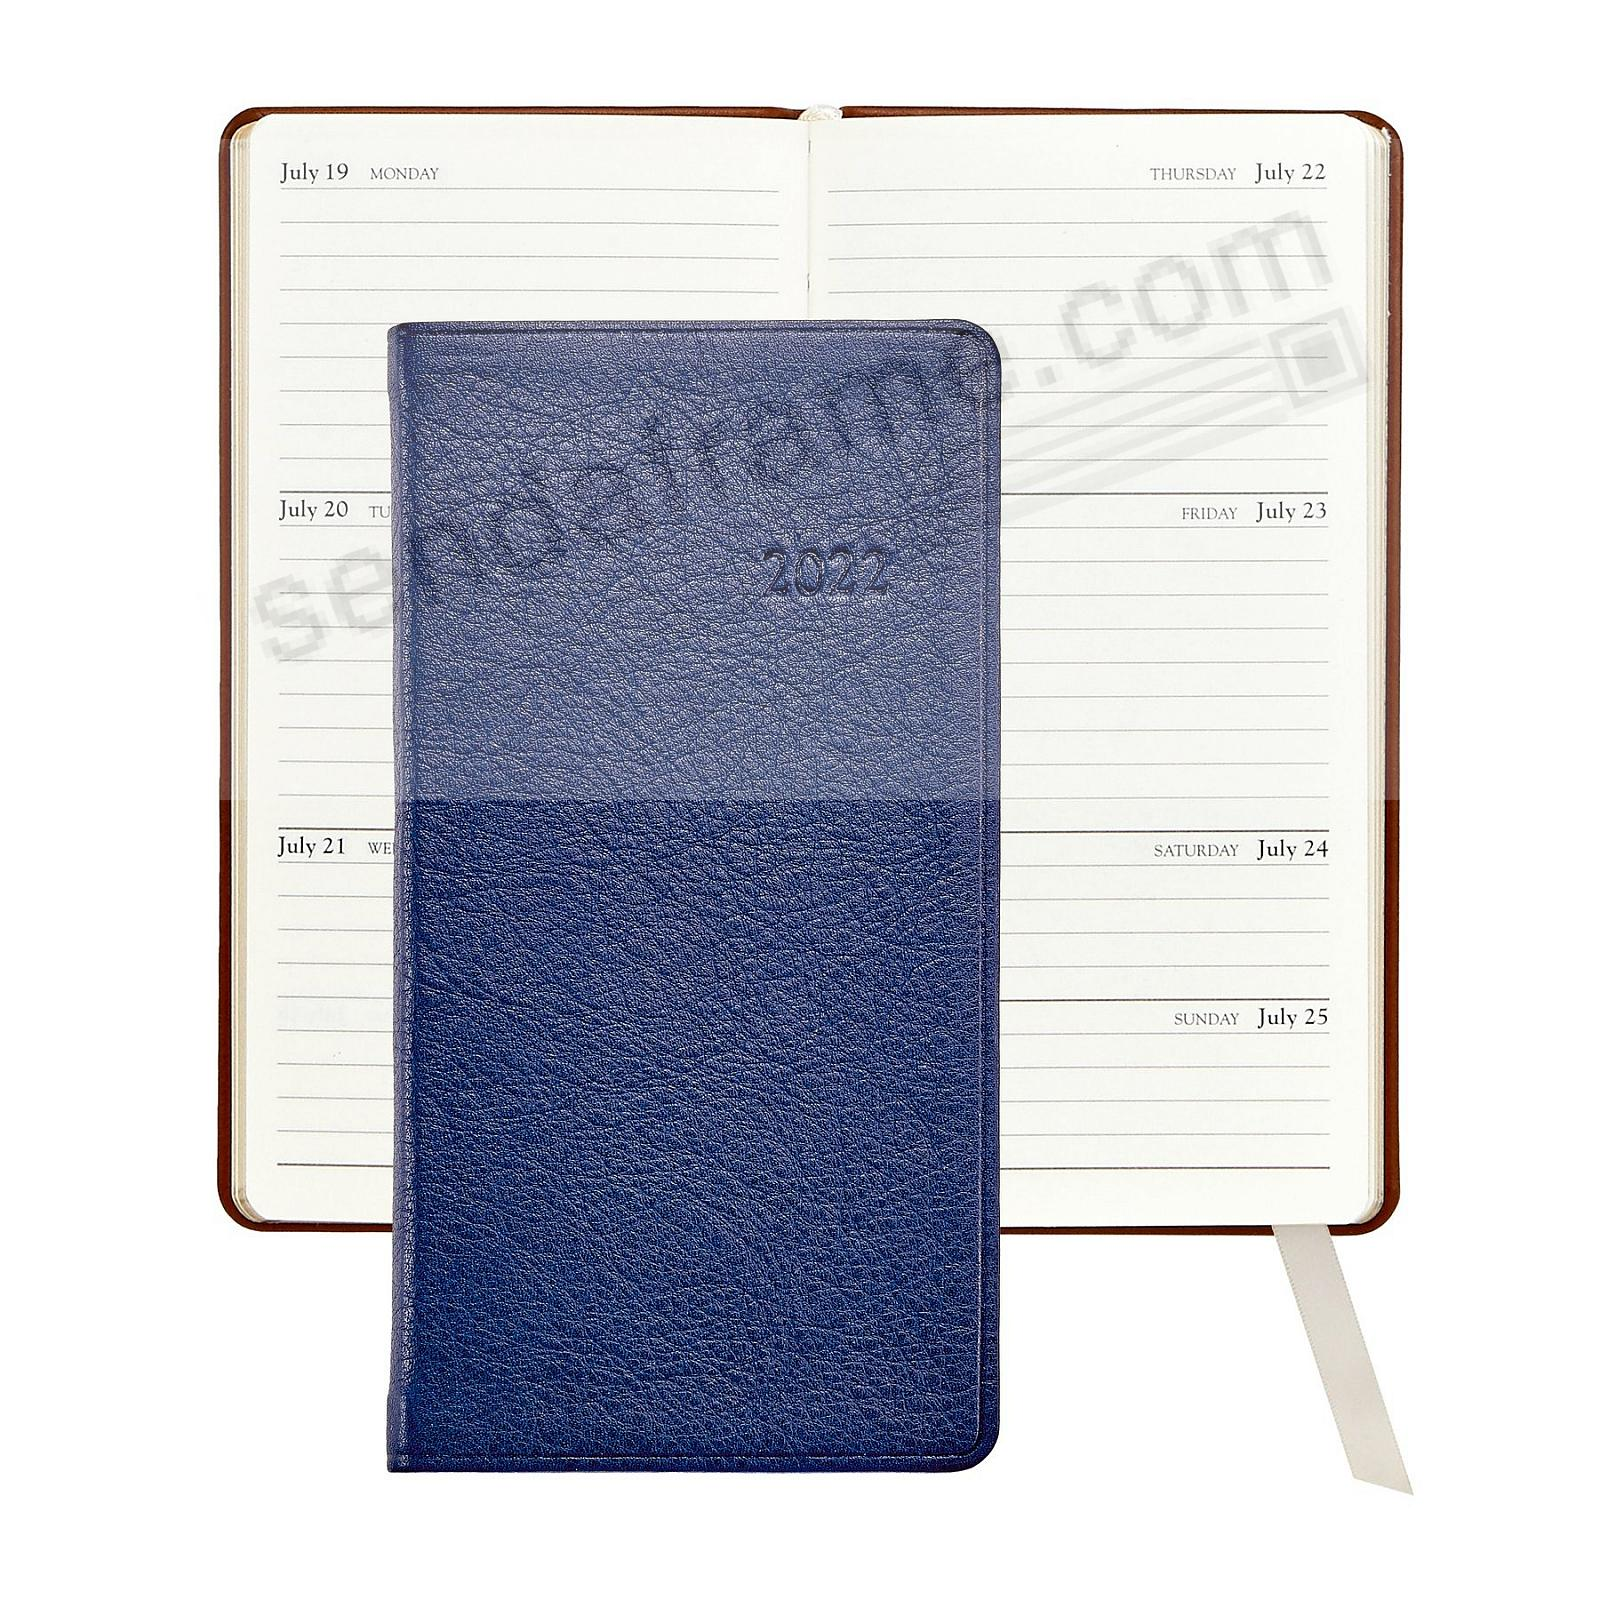 2018 TRADITIONAL-BLUE 5-inch Pocket Datebook Diary Fine Calfskin Leather by Graphic Image™